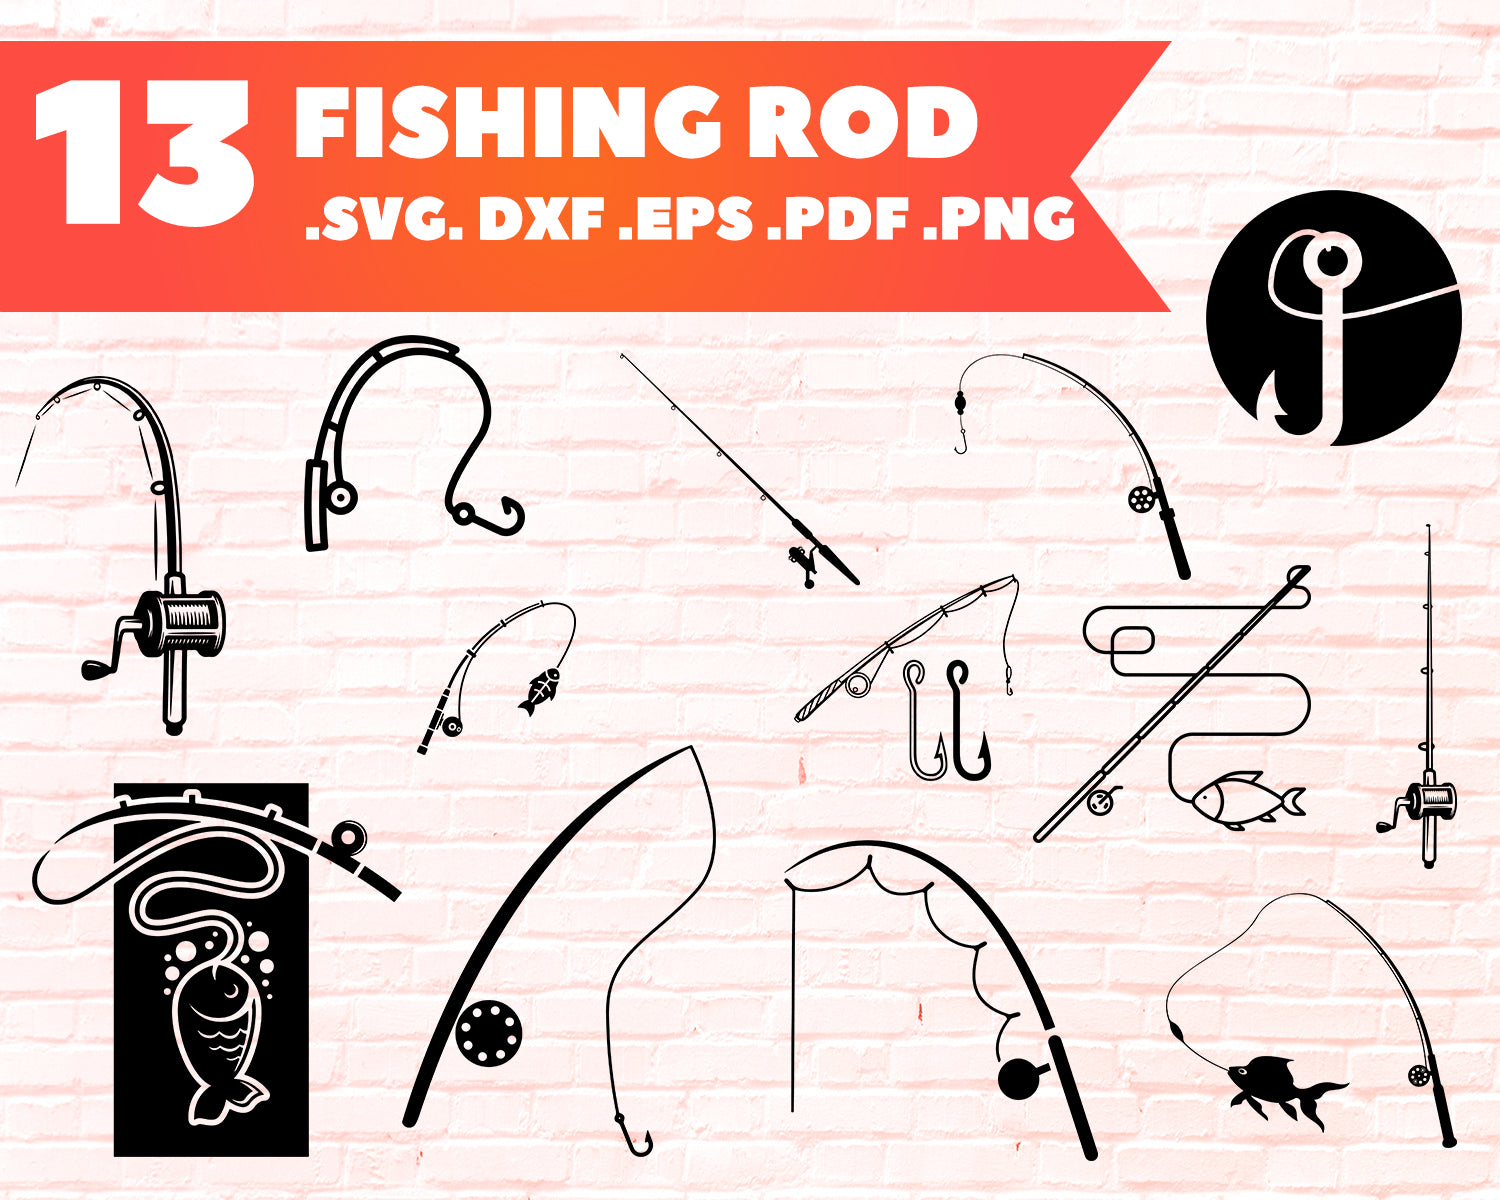 Fishing Rod Svg Fishing Svg Fishing Rod Clipart Fishing Rod Files F Clipartic